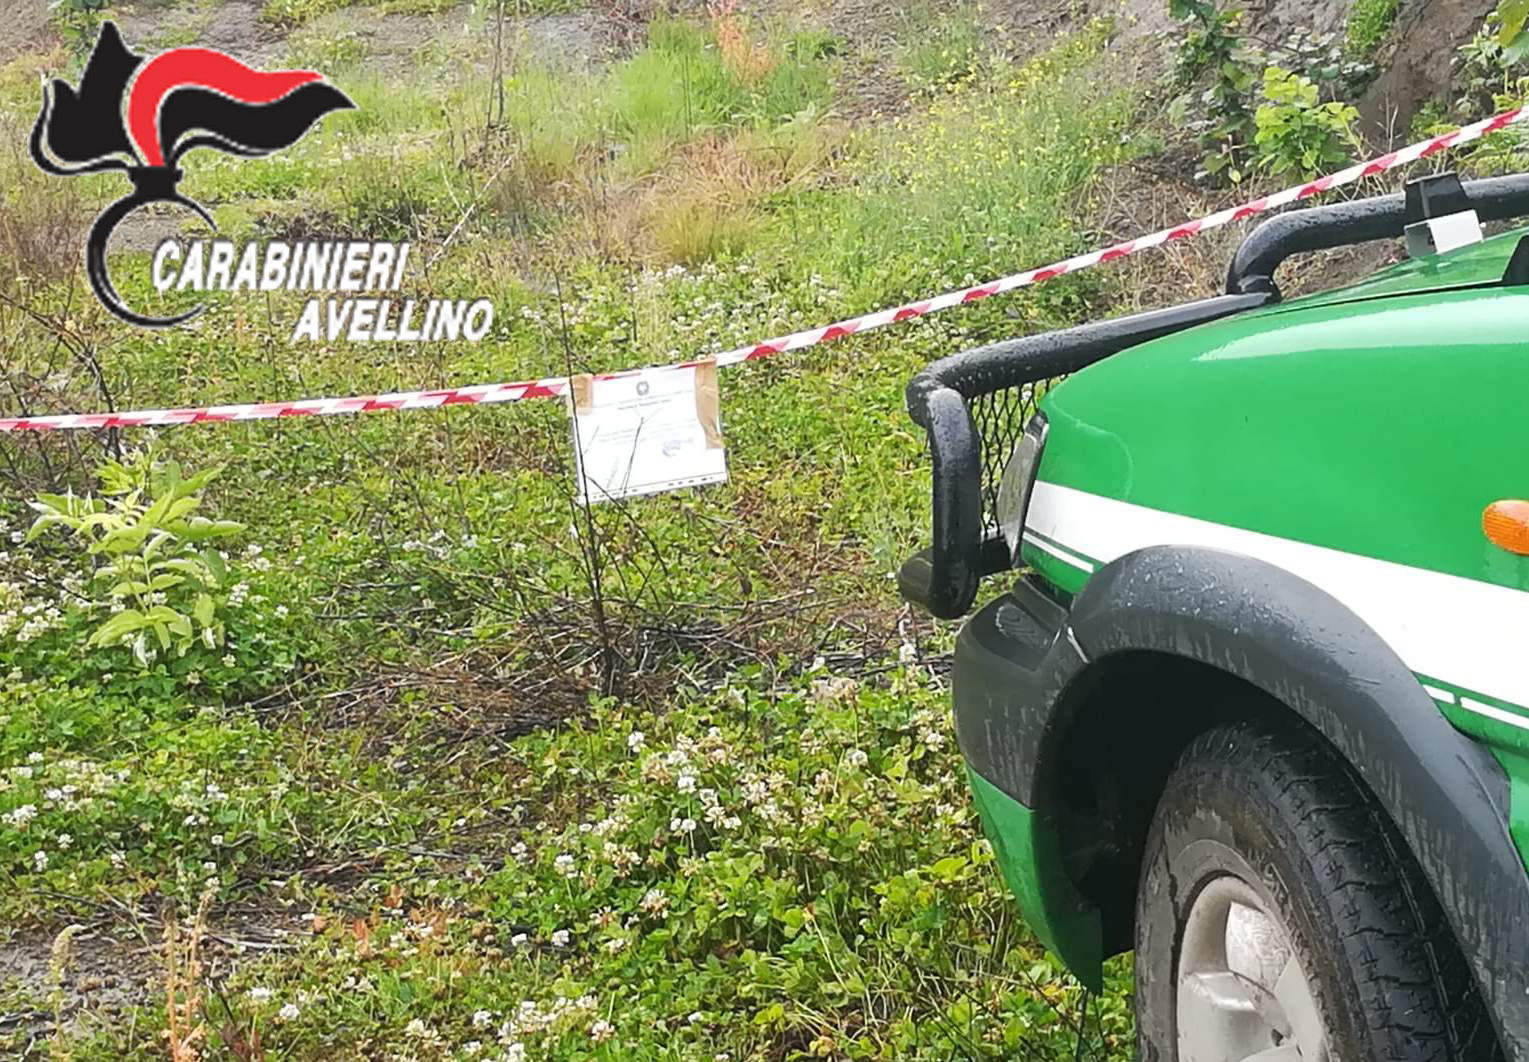 Tufo| Opere abusive in un fondo rustico vincolato, scattano sequestro dell'area e 7 denunce